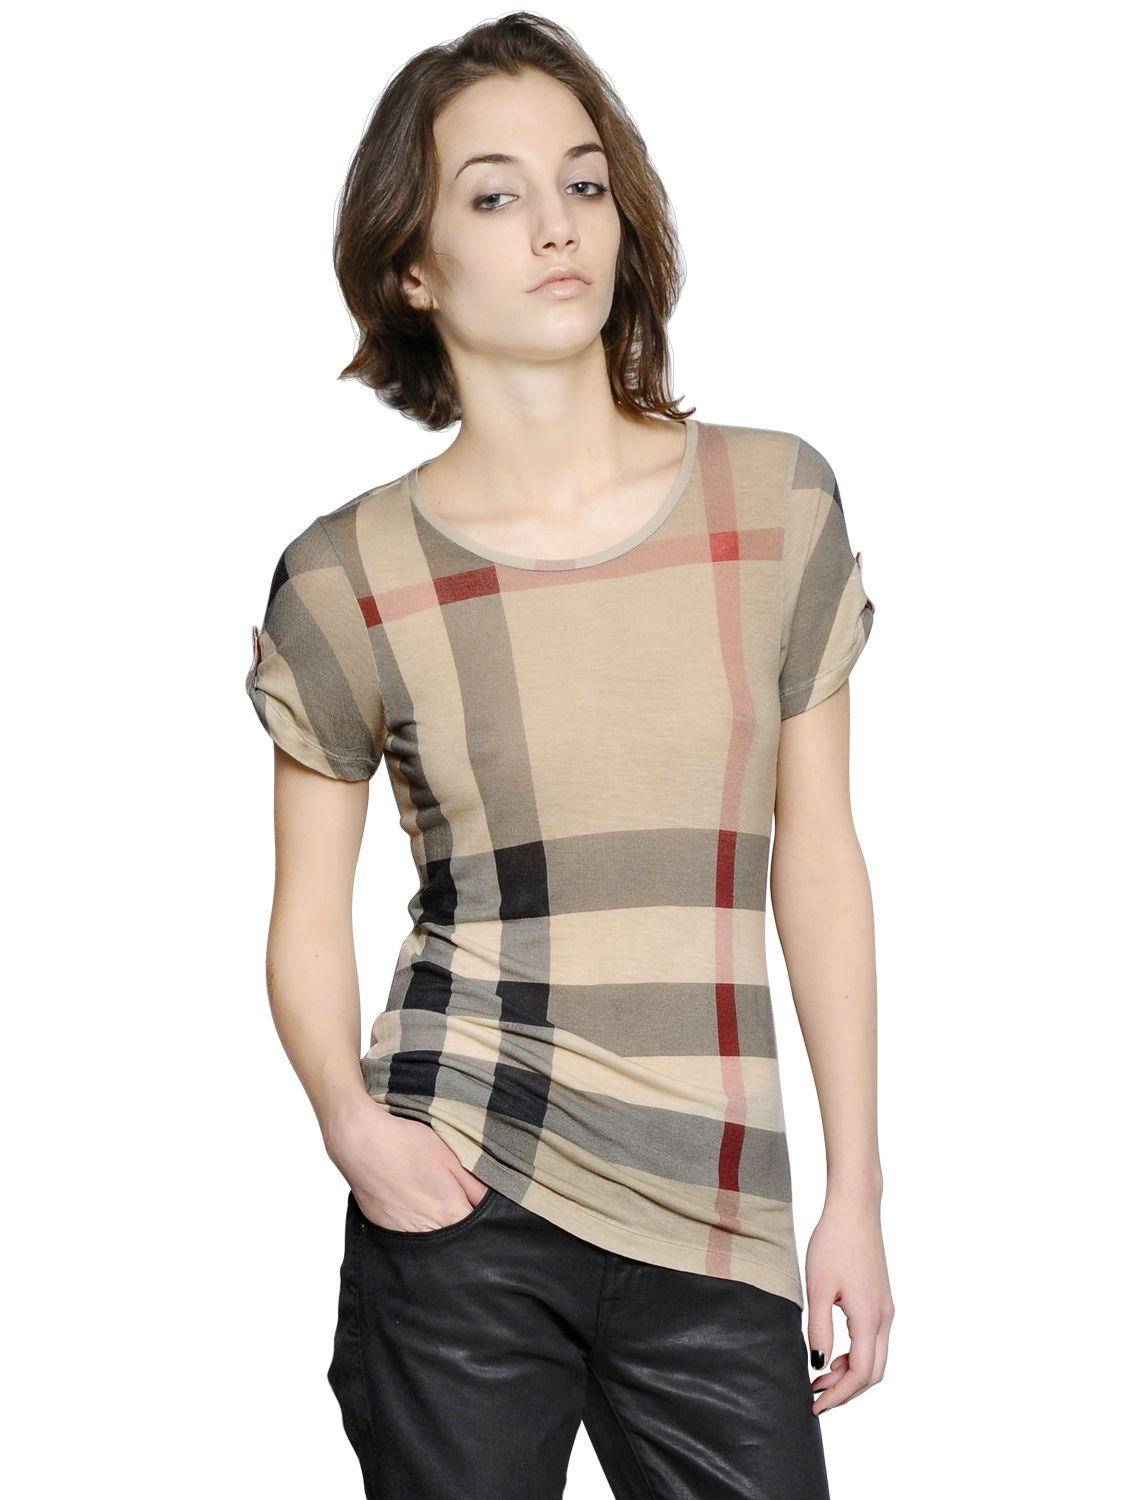 ac7758de80a3 Burberry Brit Check Printed Modal T-Shirt in Natural - Lyst